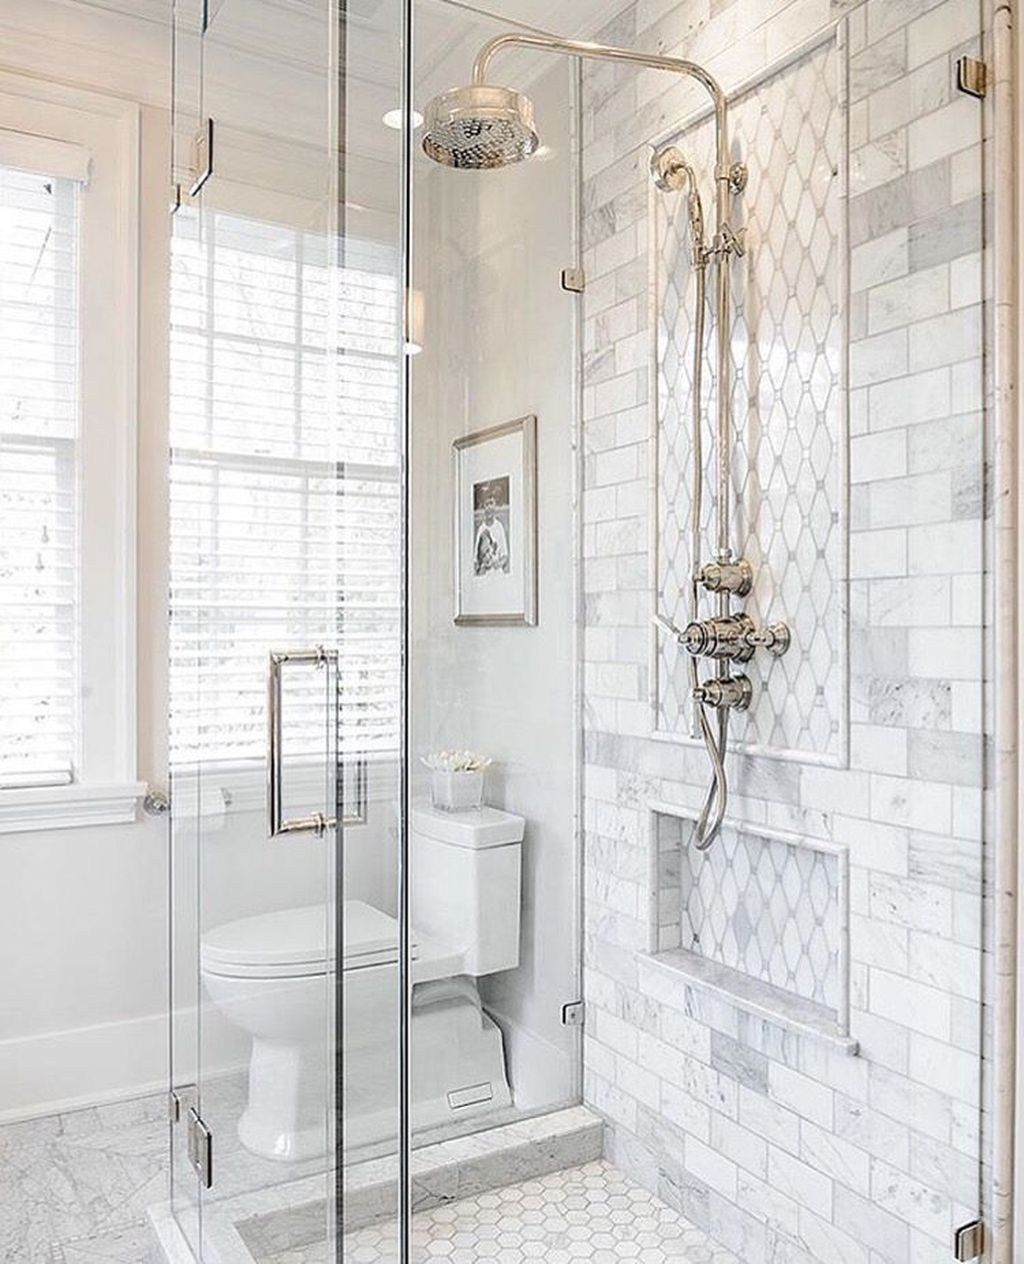 Best Small Master Bathroom Remodel Ideas 41 Bathroomremodeldesignideas Bathroom Remodel Master Small Bathroom Remodel Farmhouse Master Bathroom